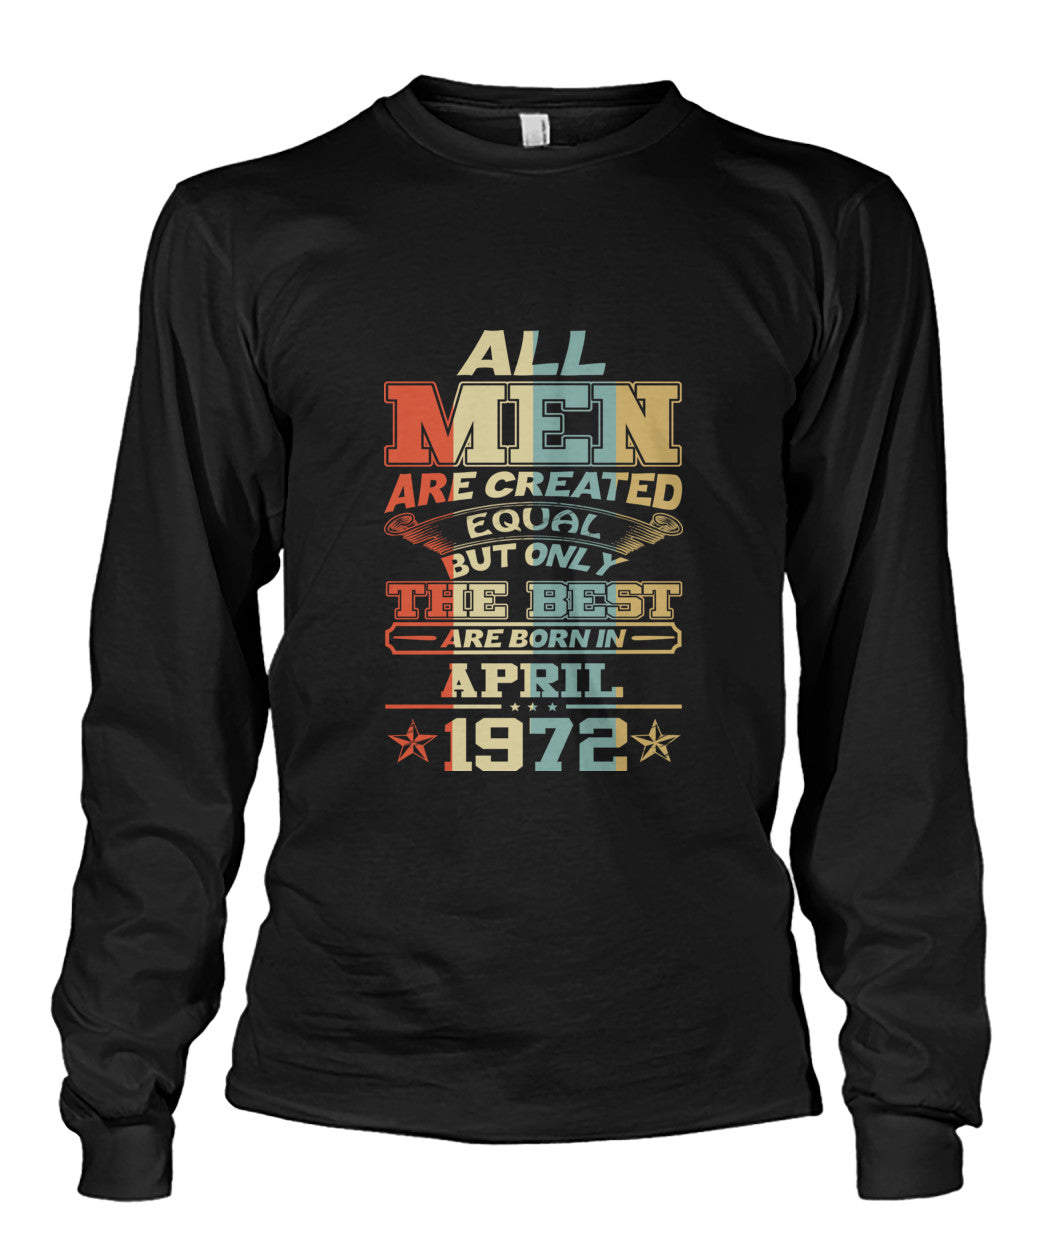 All Men Are Created Equal Only Best Are Born April 1972